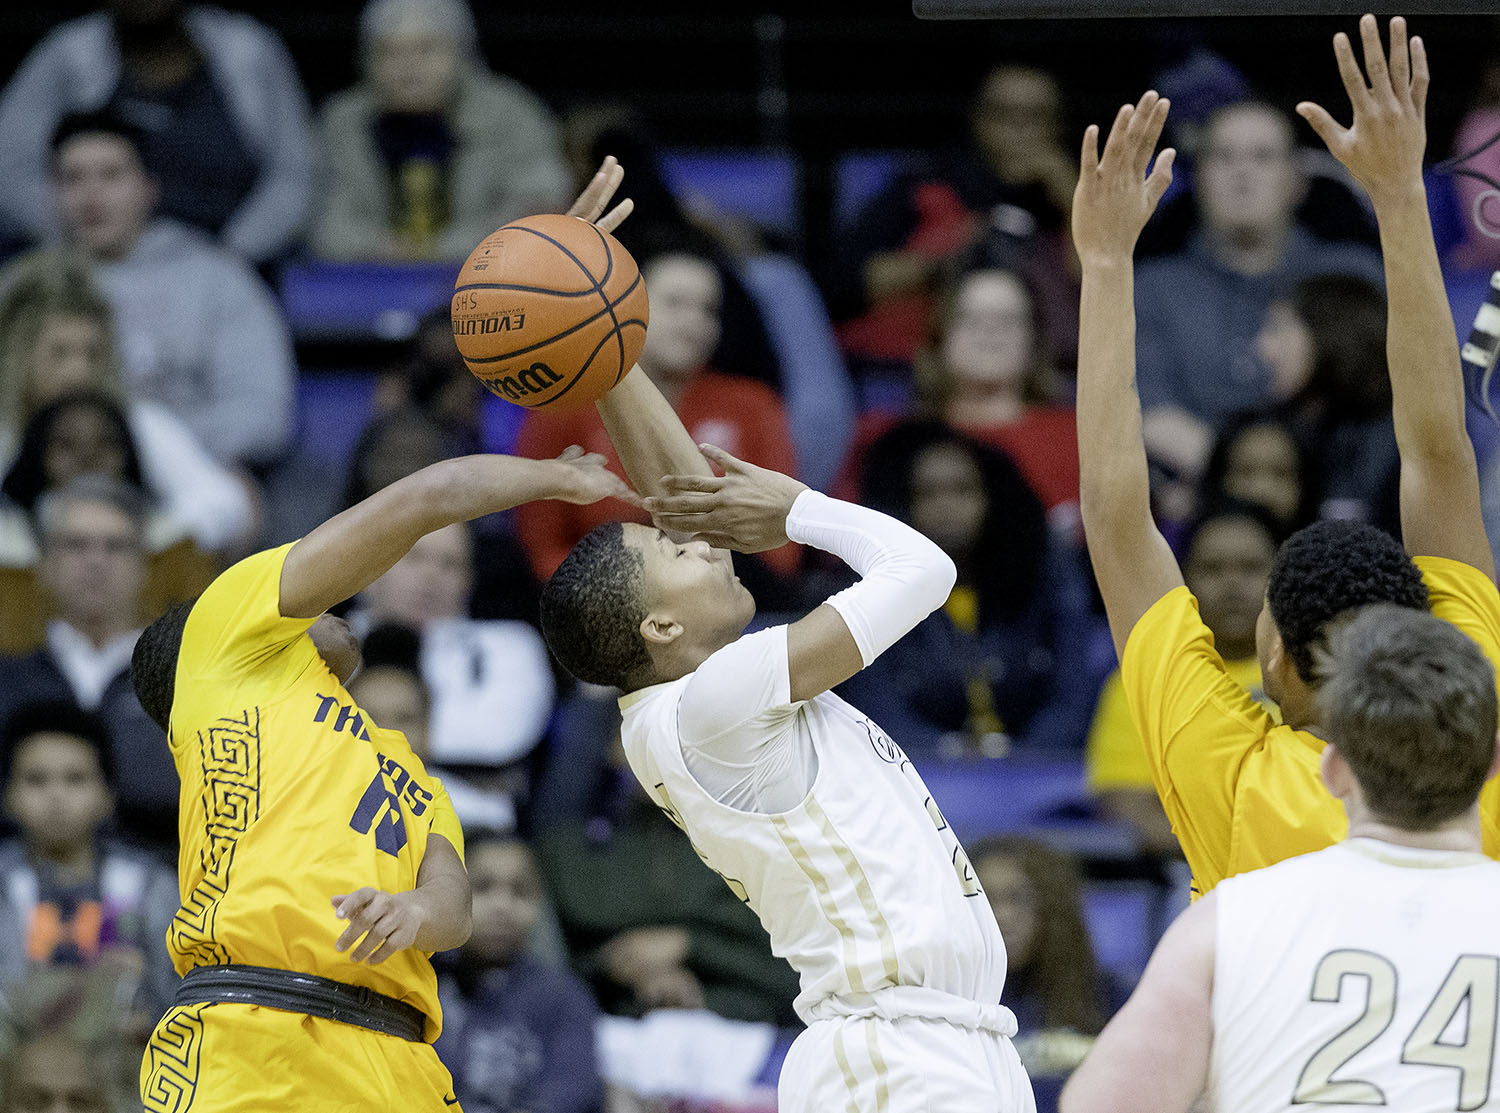 Southeast's Damon Davis blocks Sacred Heart-Griffin's Andrew Schluter during the Boys City Tournament at the Bank of Springfield Center Friday, Jan. 18, 2019.  [Ted Schurter/The State Journal-Register]